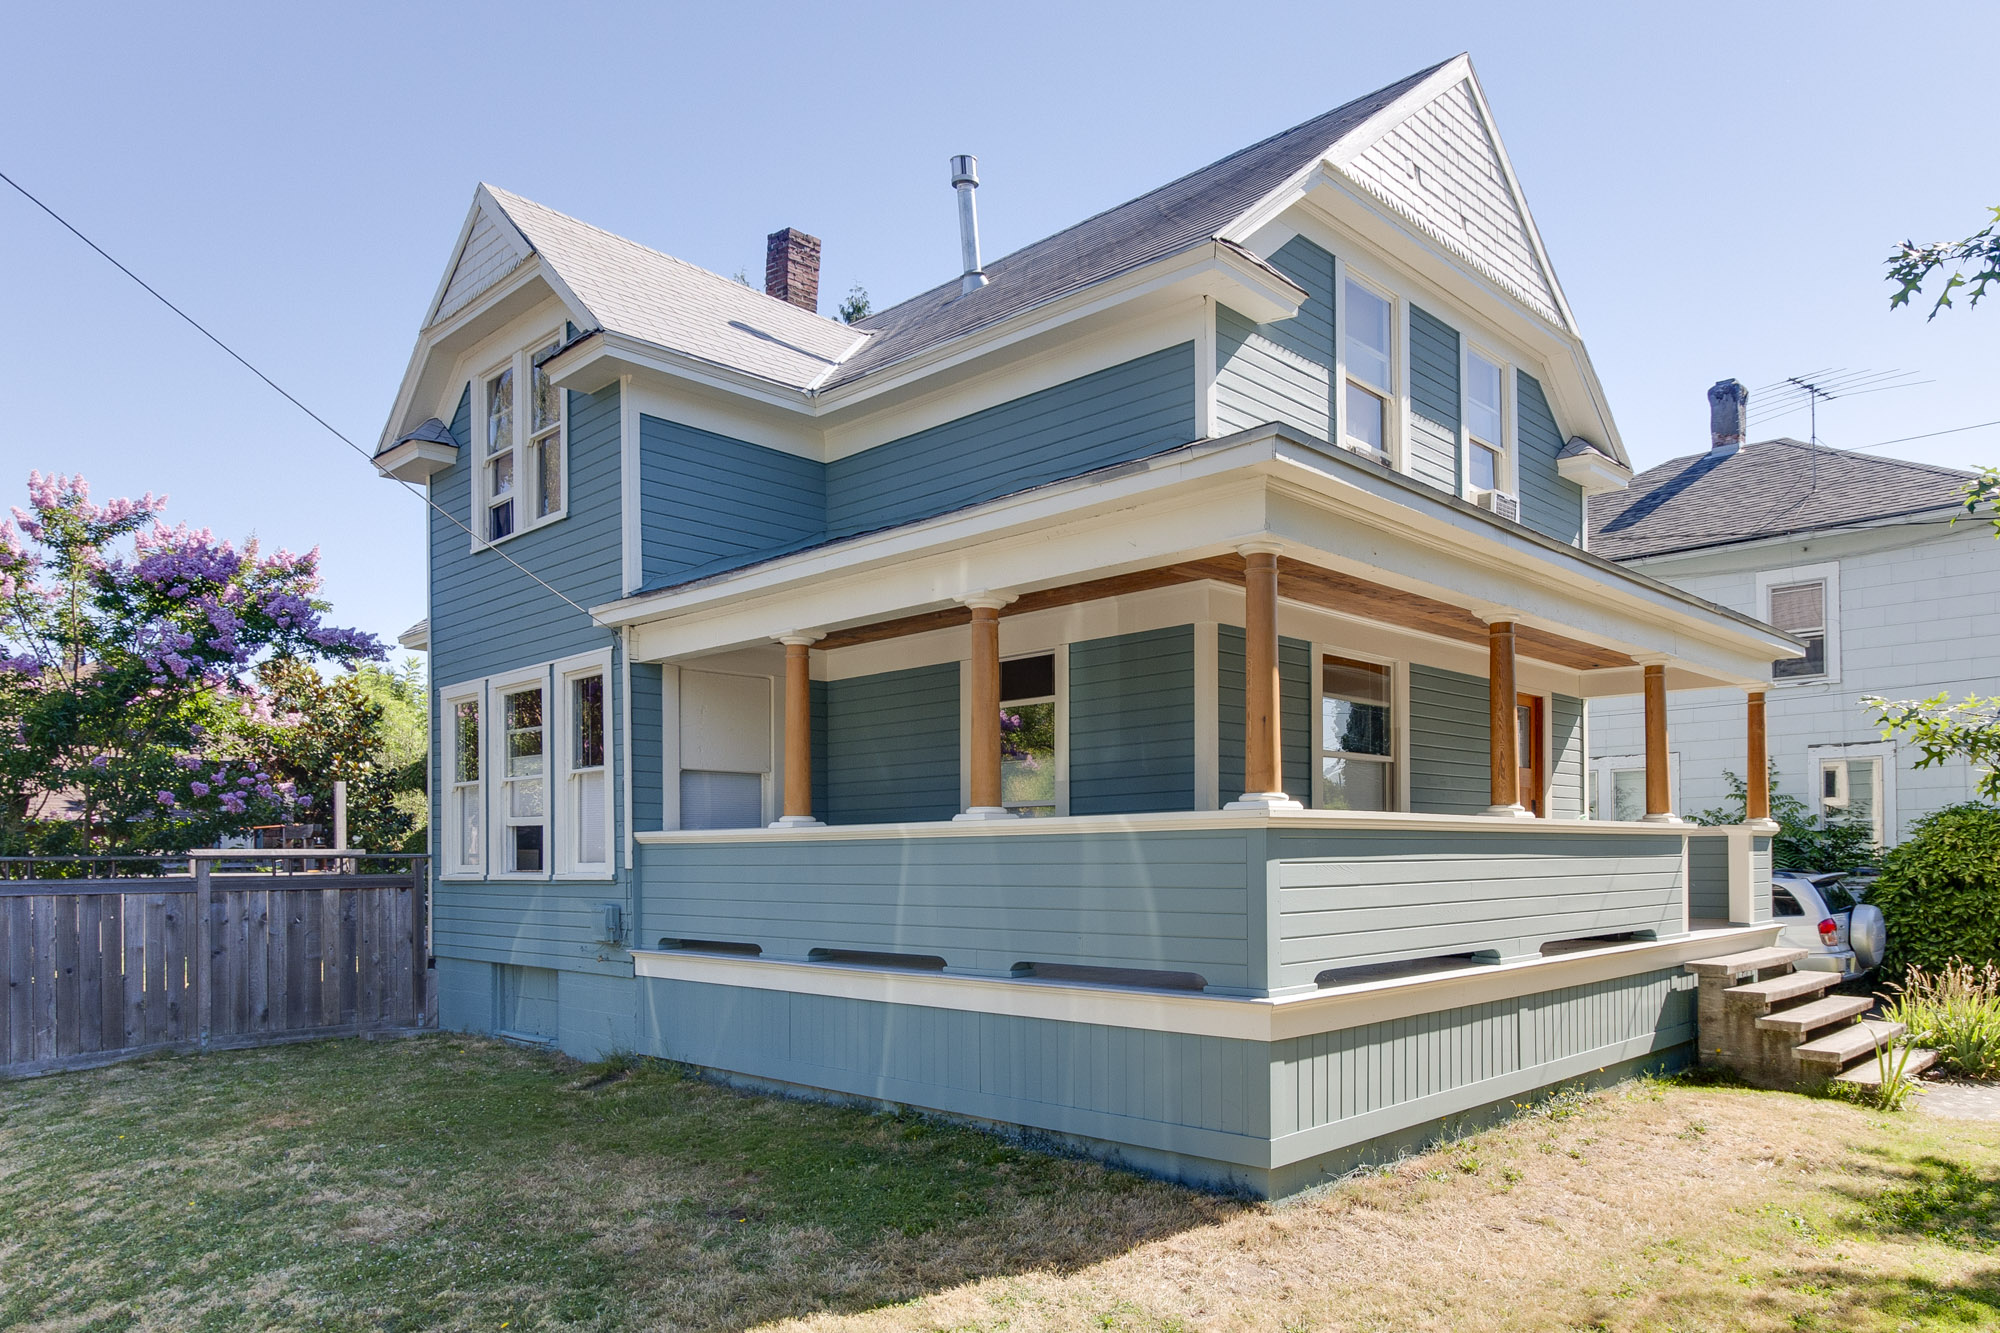 3807 SE Main St.   $465,000  Sold for $450,000